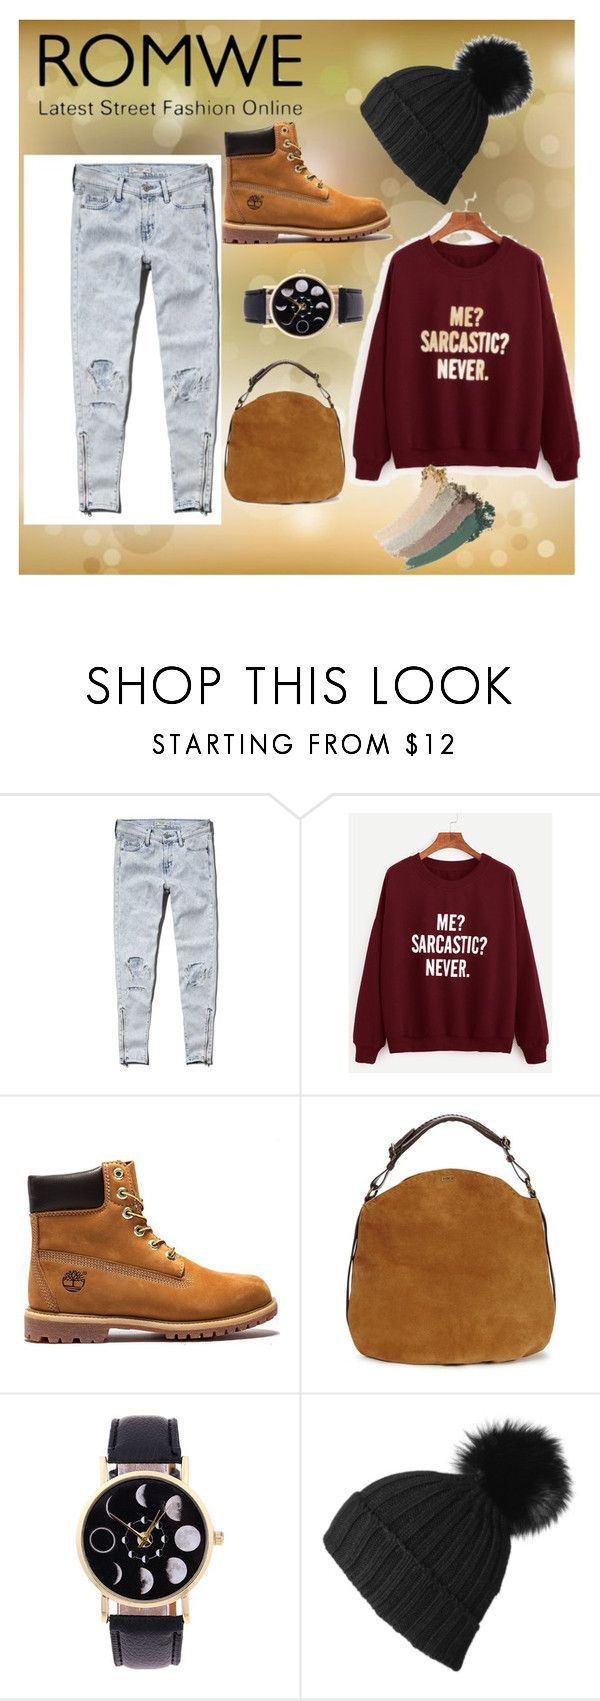 """""""ROMWE"""" by sabrina-8591 ❤ liked on Polyvore featuring Abercrombie & Fitch, UGG, Black and Gucci"""